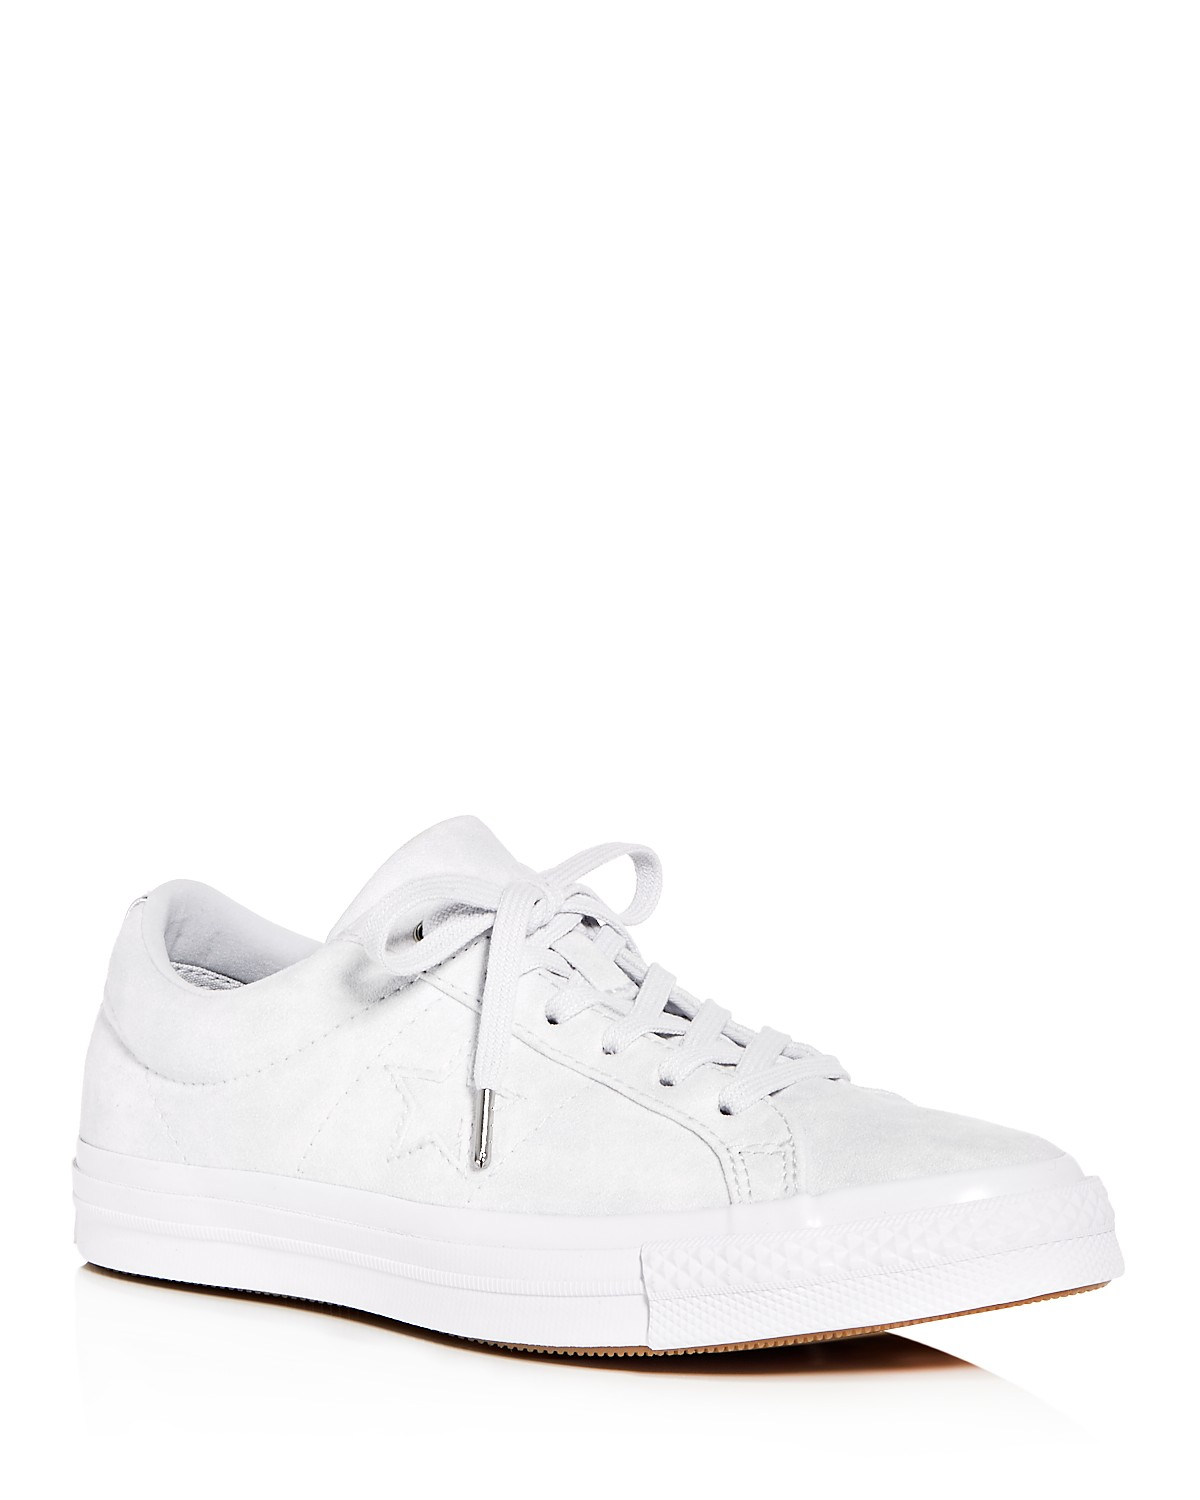 Converse Women's One Star Suede Lace Up Sneakers TaoStqHZV